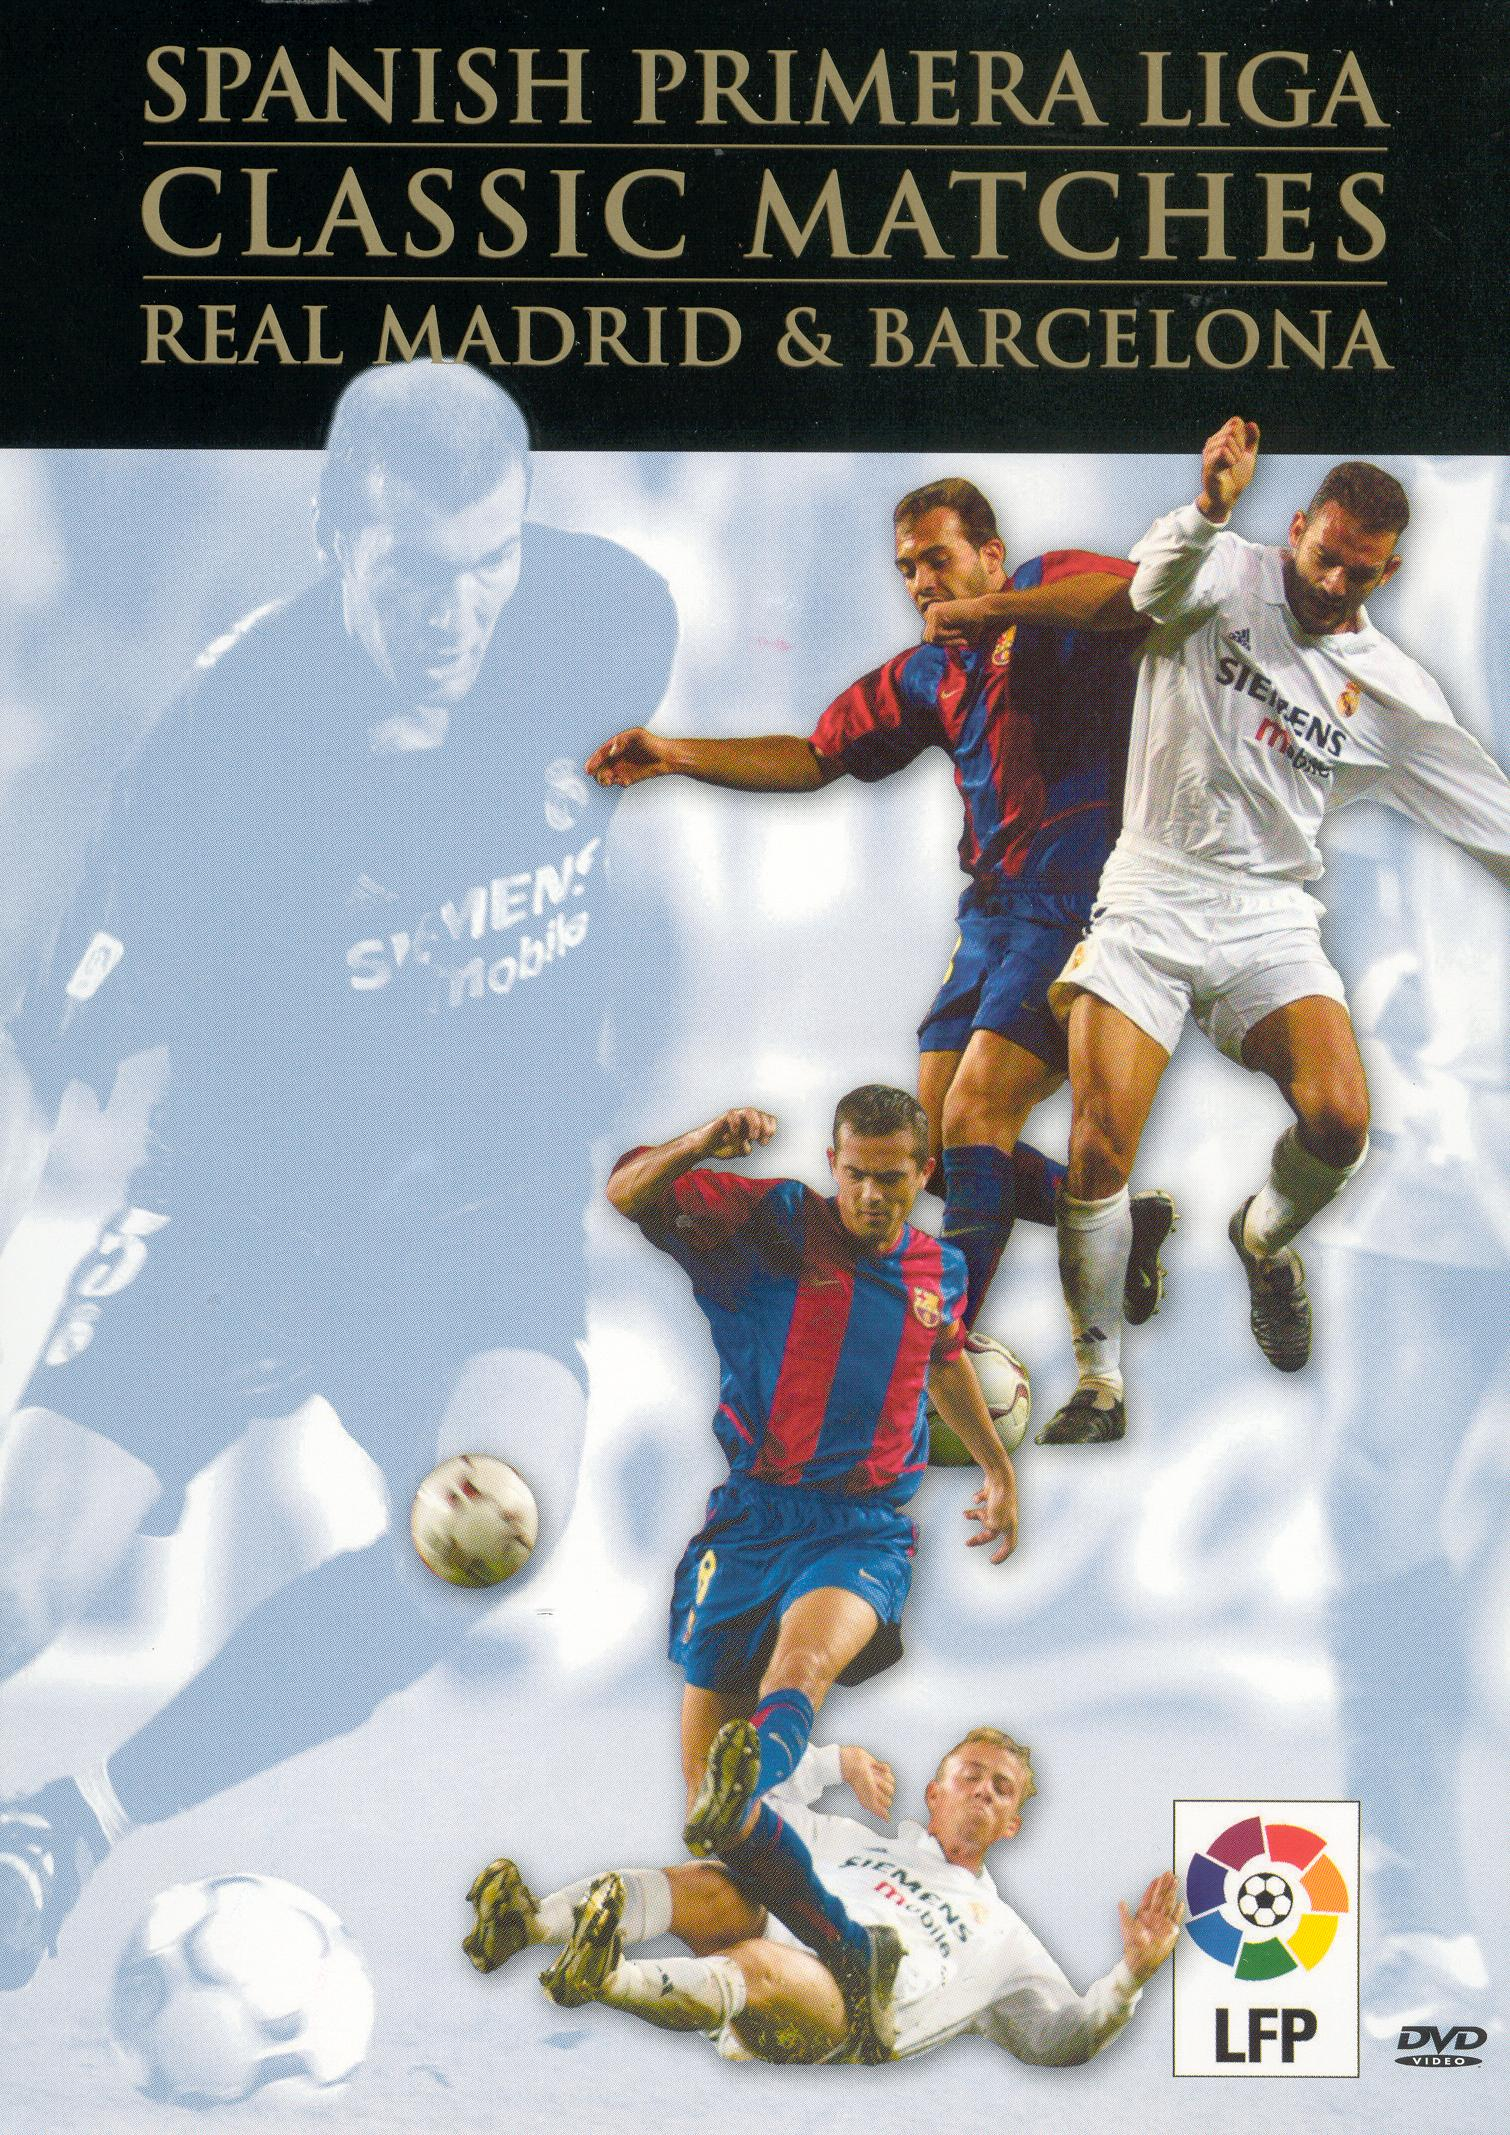 Spanish Primera Liga: Classic Matches - Real Madrid & Barcelona